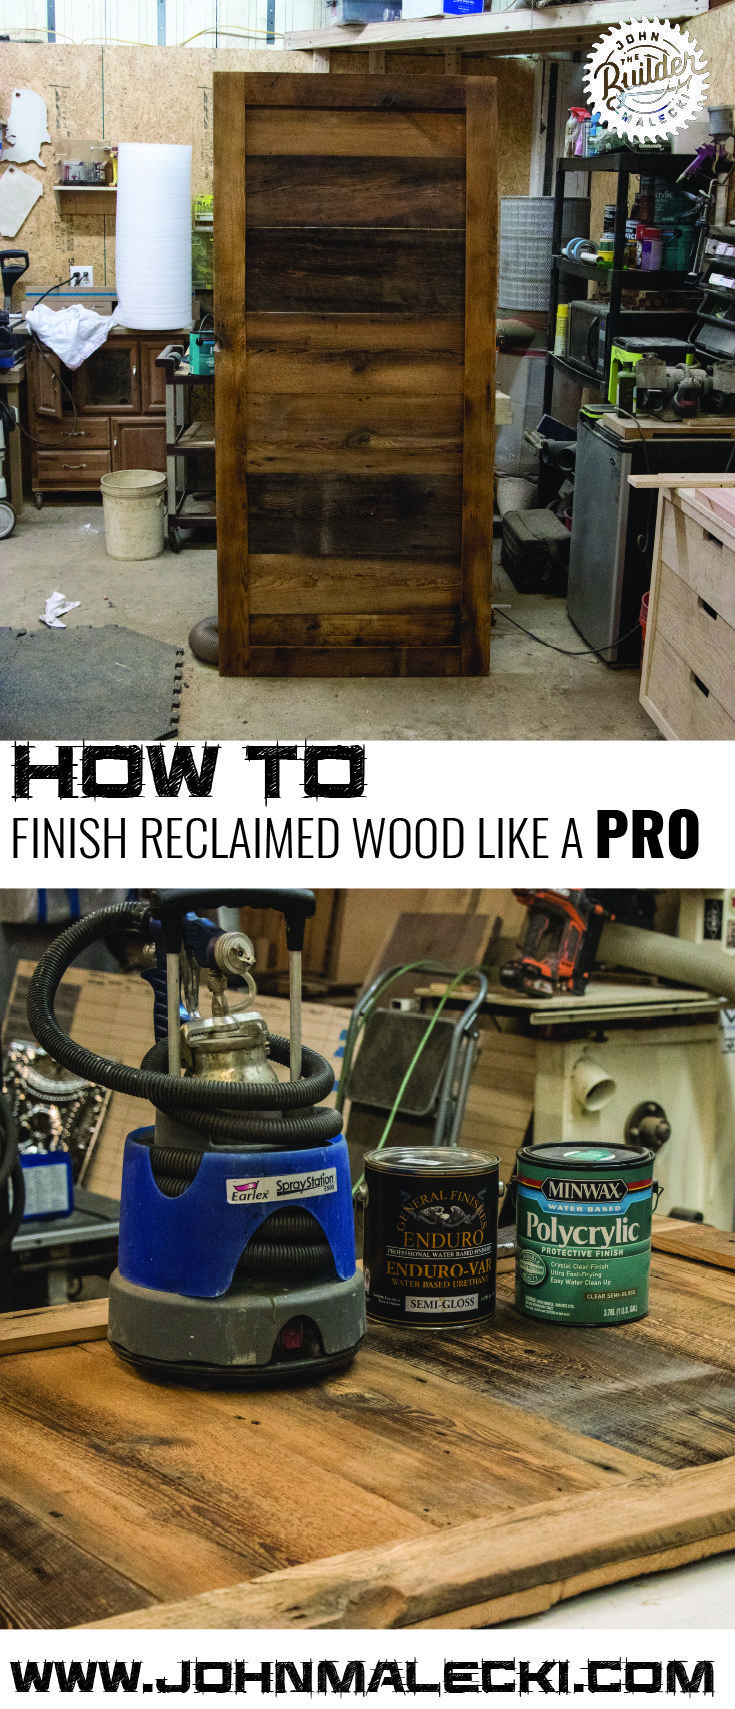 DIY Woodworking Ideas Learn How to finish reclaimed wood like one of the pros! #woodworking #diy #Furn...